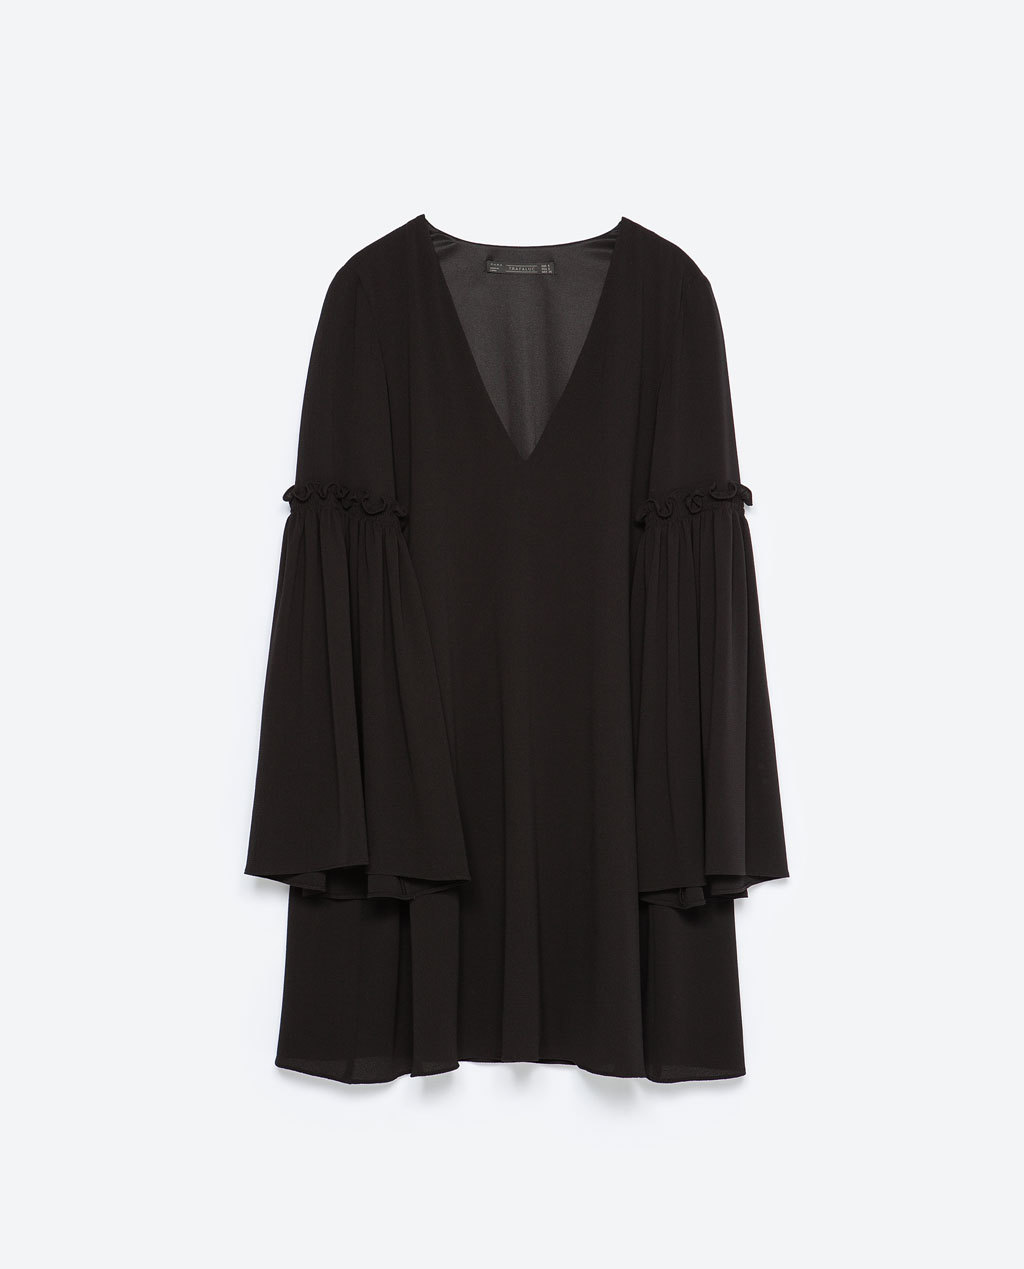 Bell Sleeve Dress - style: tunic; length: mid thigh; neckline: low v-neck; sleeve style: bell sleeve; fit: loose; pattern: plain; predominant colour: black; occasions: casual, evening, occasion; sleeve length: long sleeve; pattern type: fabric; texture group: other - light to midweight; season: s/s 2015; wardrobe: basic